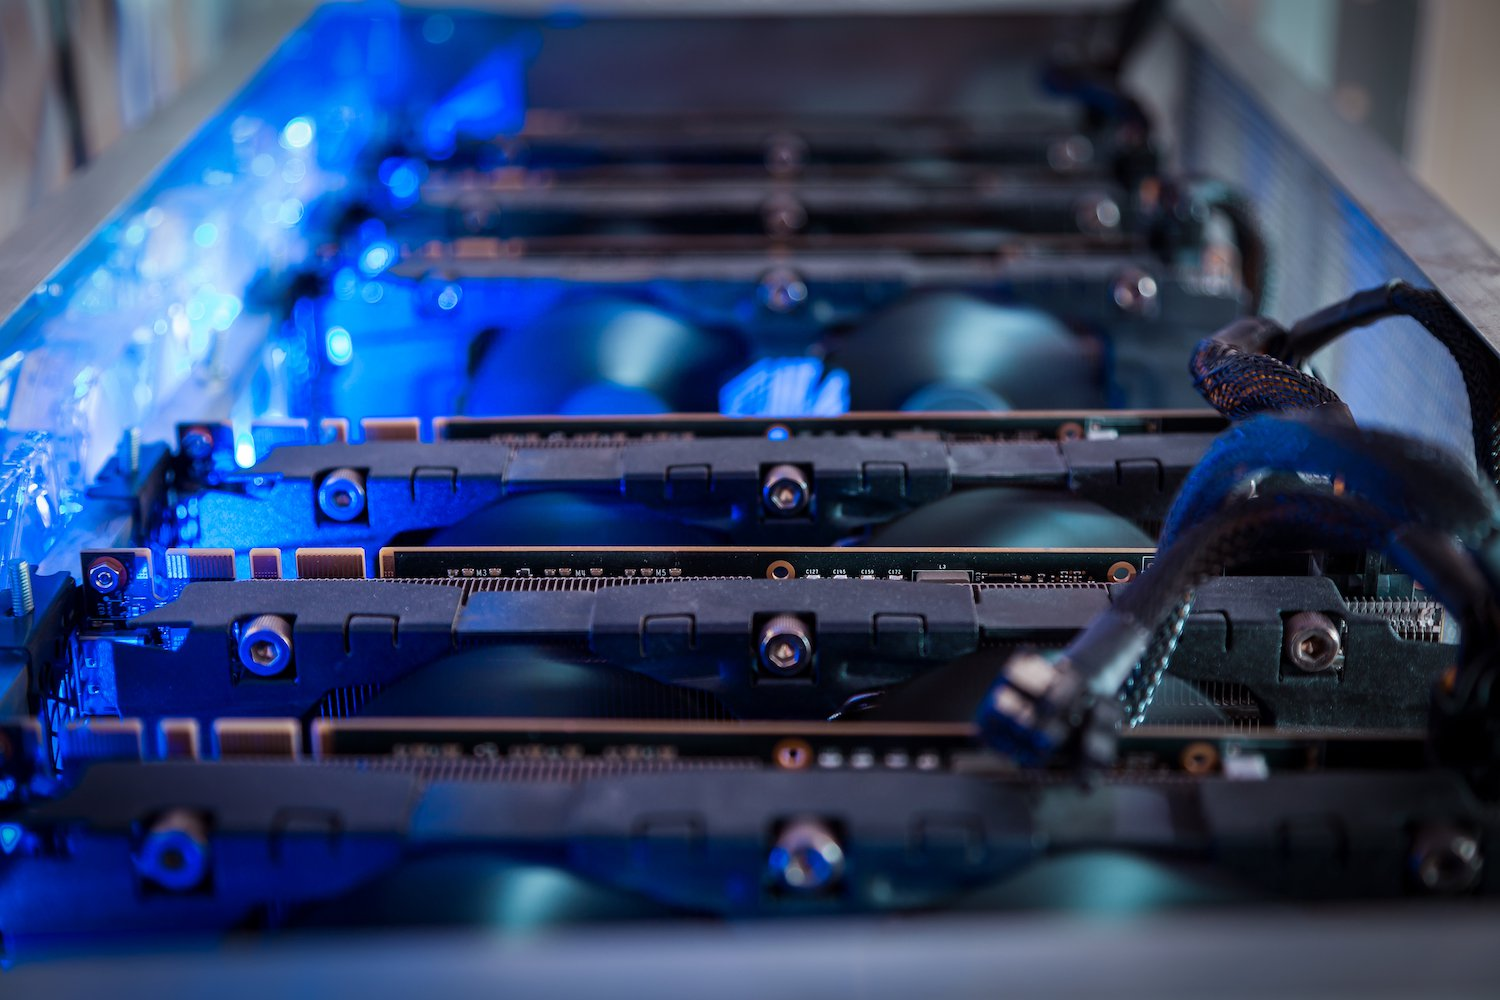 Ethereum's ASIC Rebellion Heats Up With New Effort to Brick Big Miners